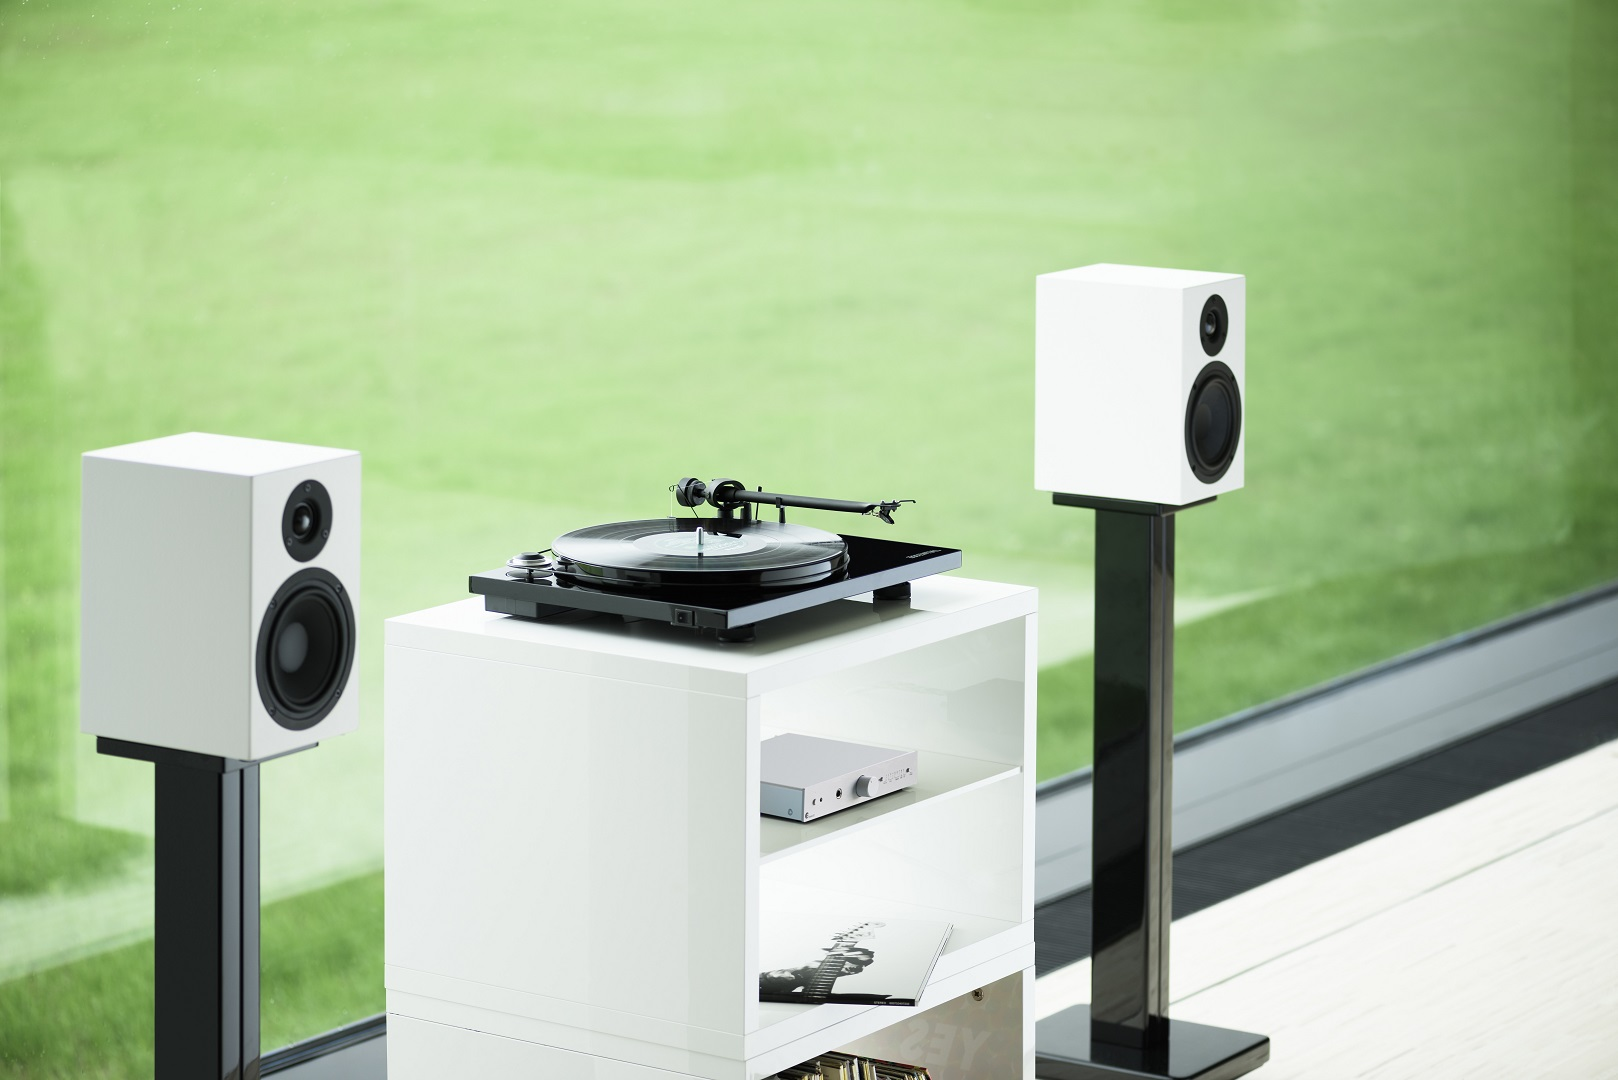 Speaker Box 5 – Pro-Ject Audio Systems